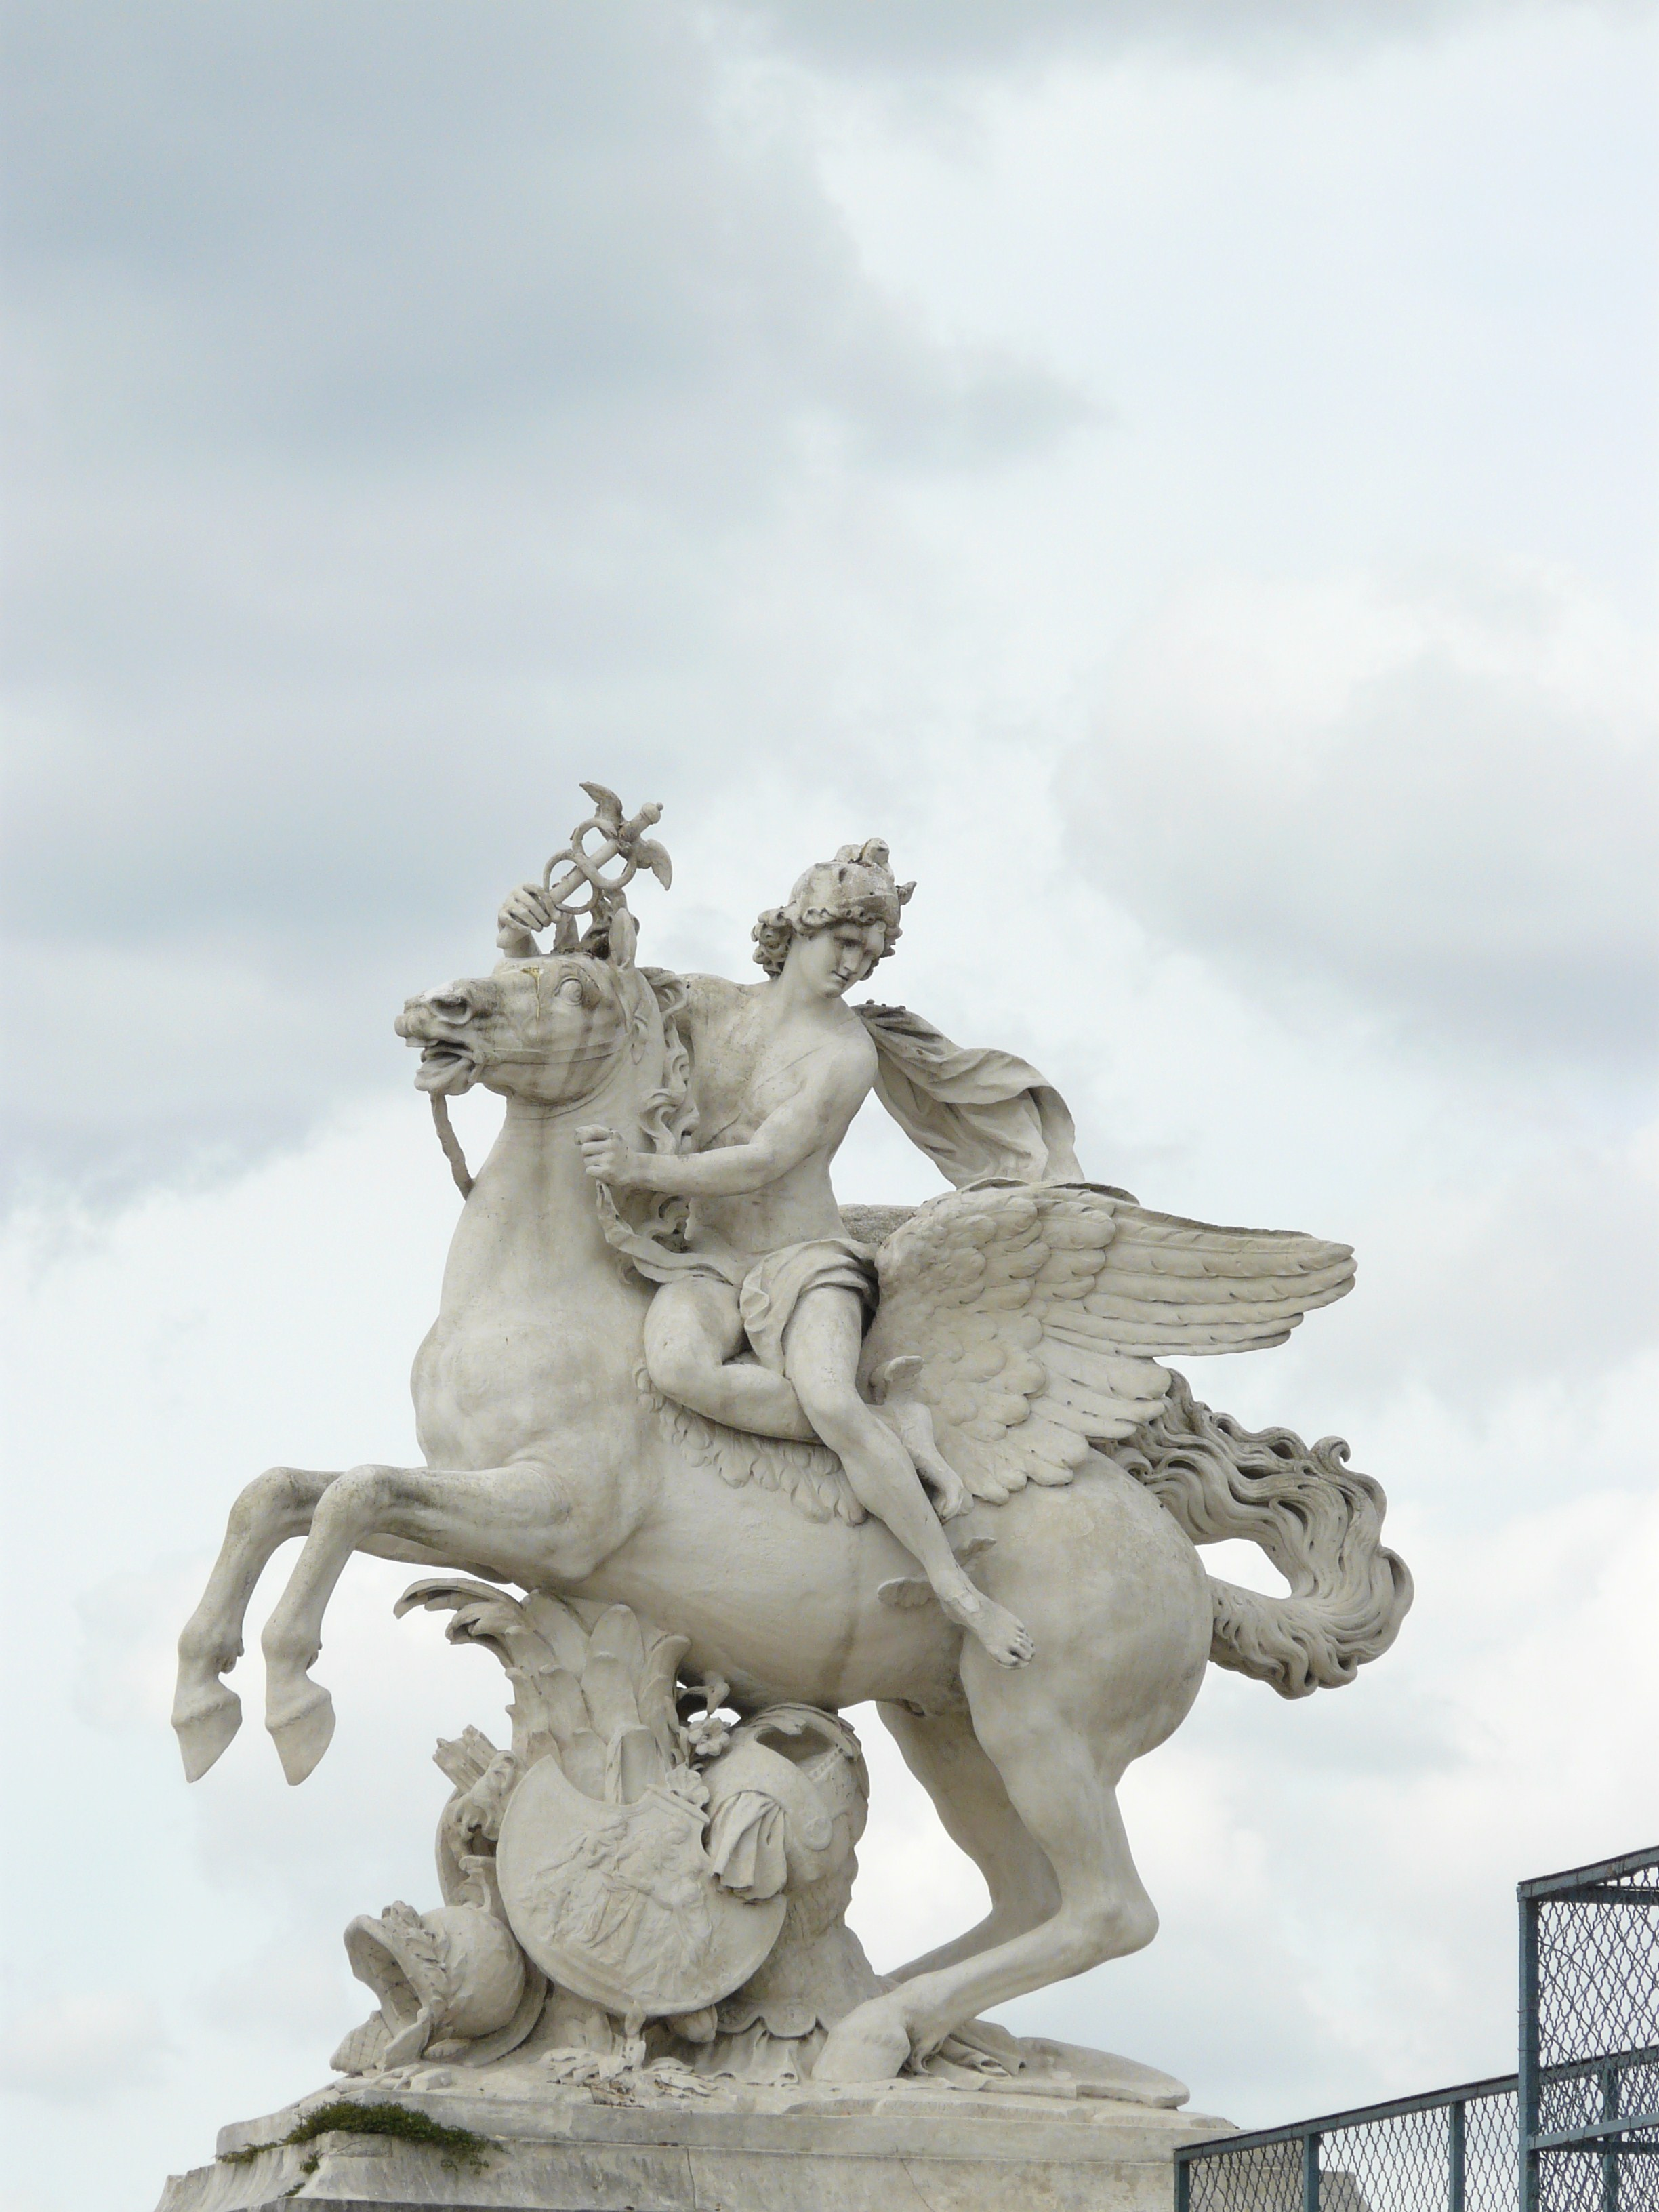 Mercury riding Pegasus near the west entrance of Tuileries, Paris